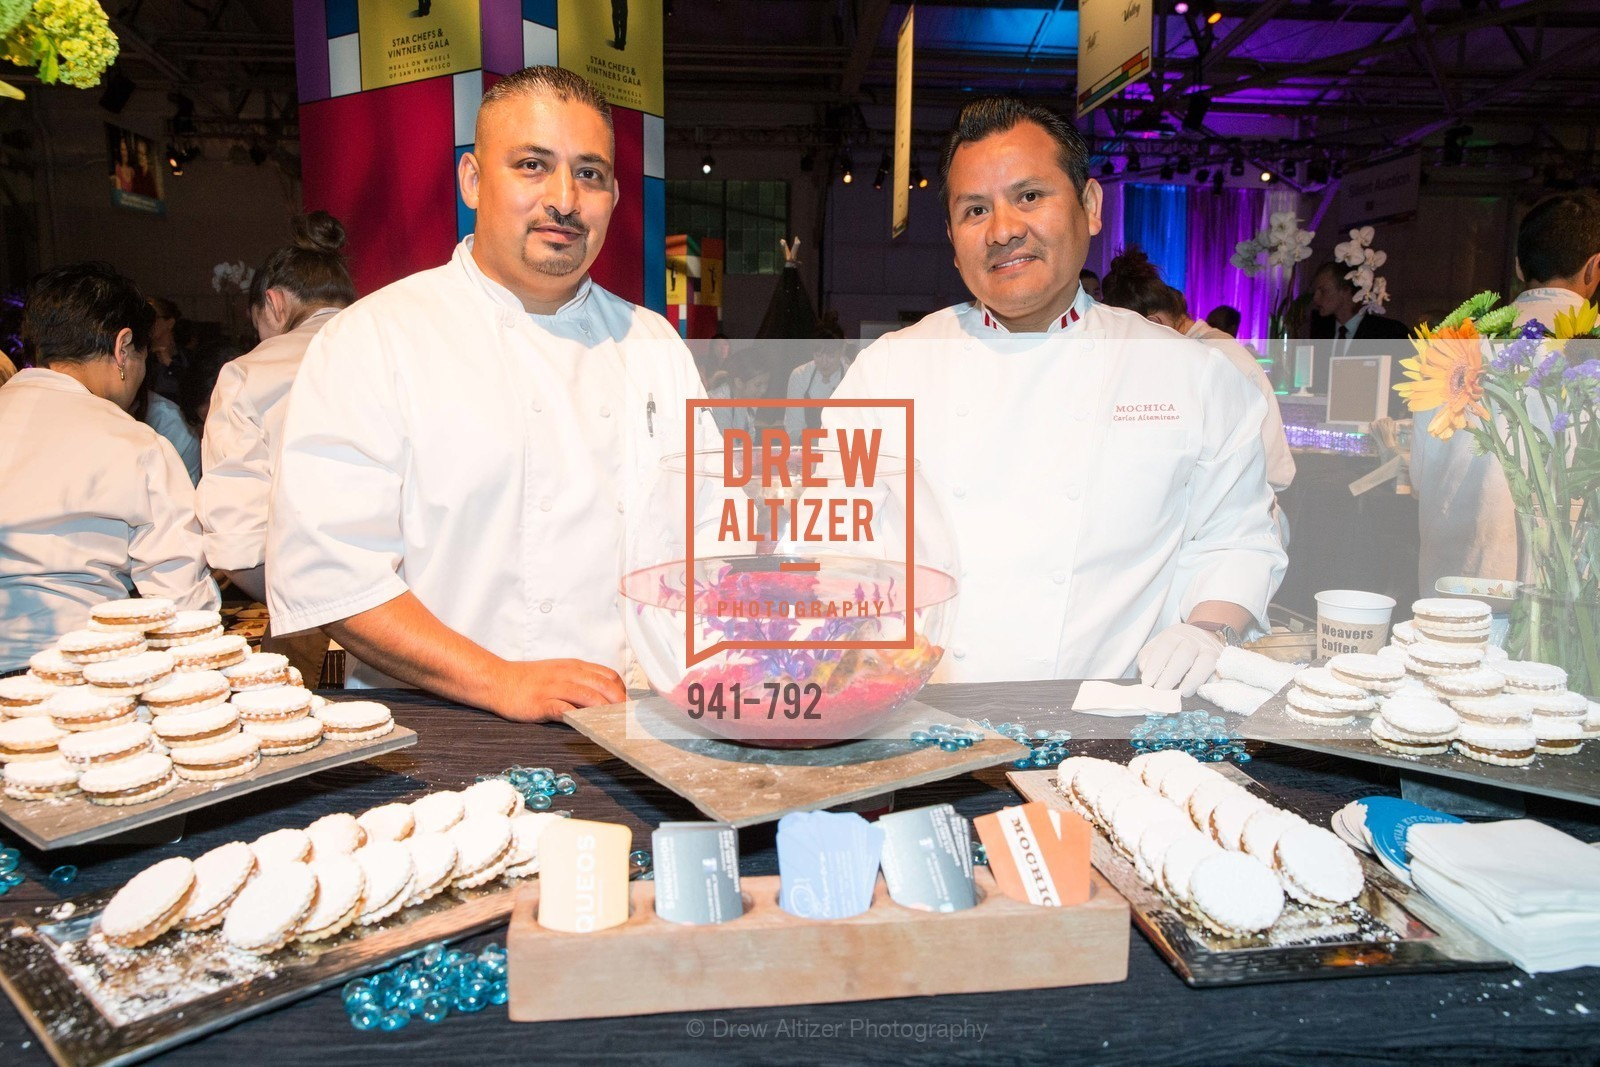 Carlos Altamirano, MEALS ON WHEELS OF SAN FRANCISCO'S 28th Annual Star Chefs and Vintners Gala, US, April 19th, 2015,Drew Altizer, Drew Altizer Photography, full-service agency, private events, San Francisco photographer, photographer california